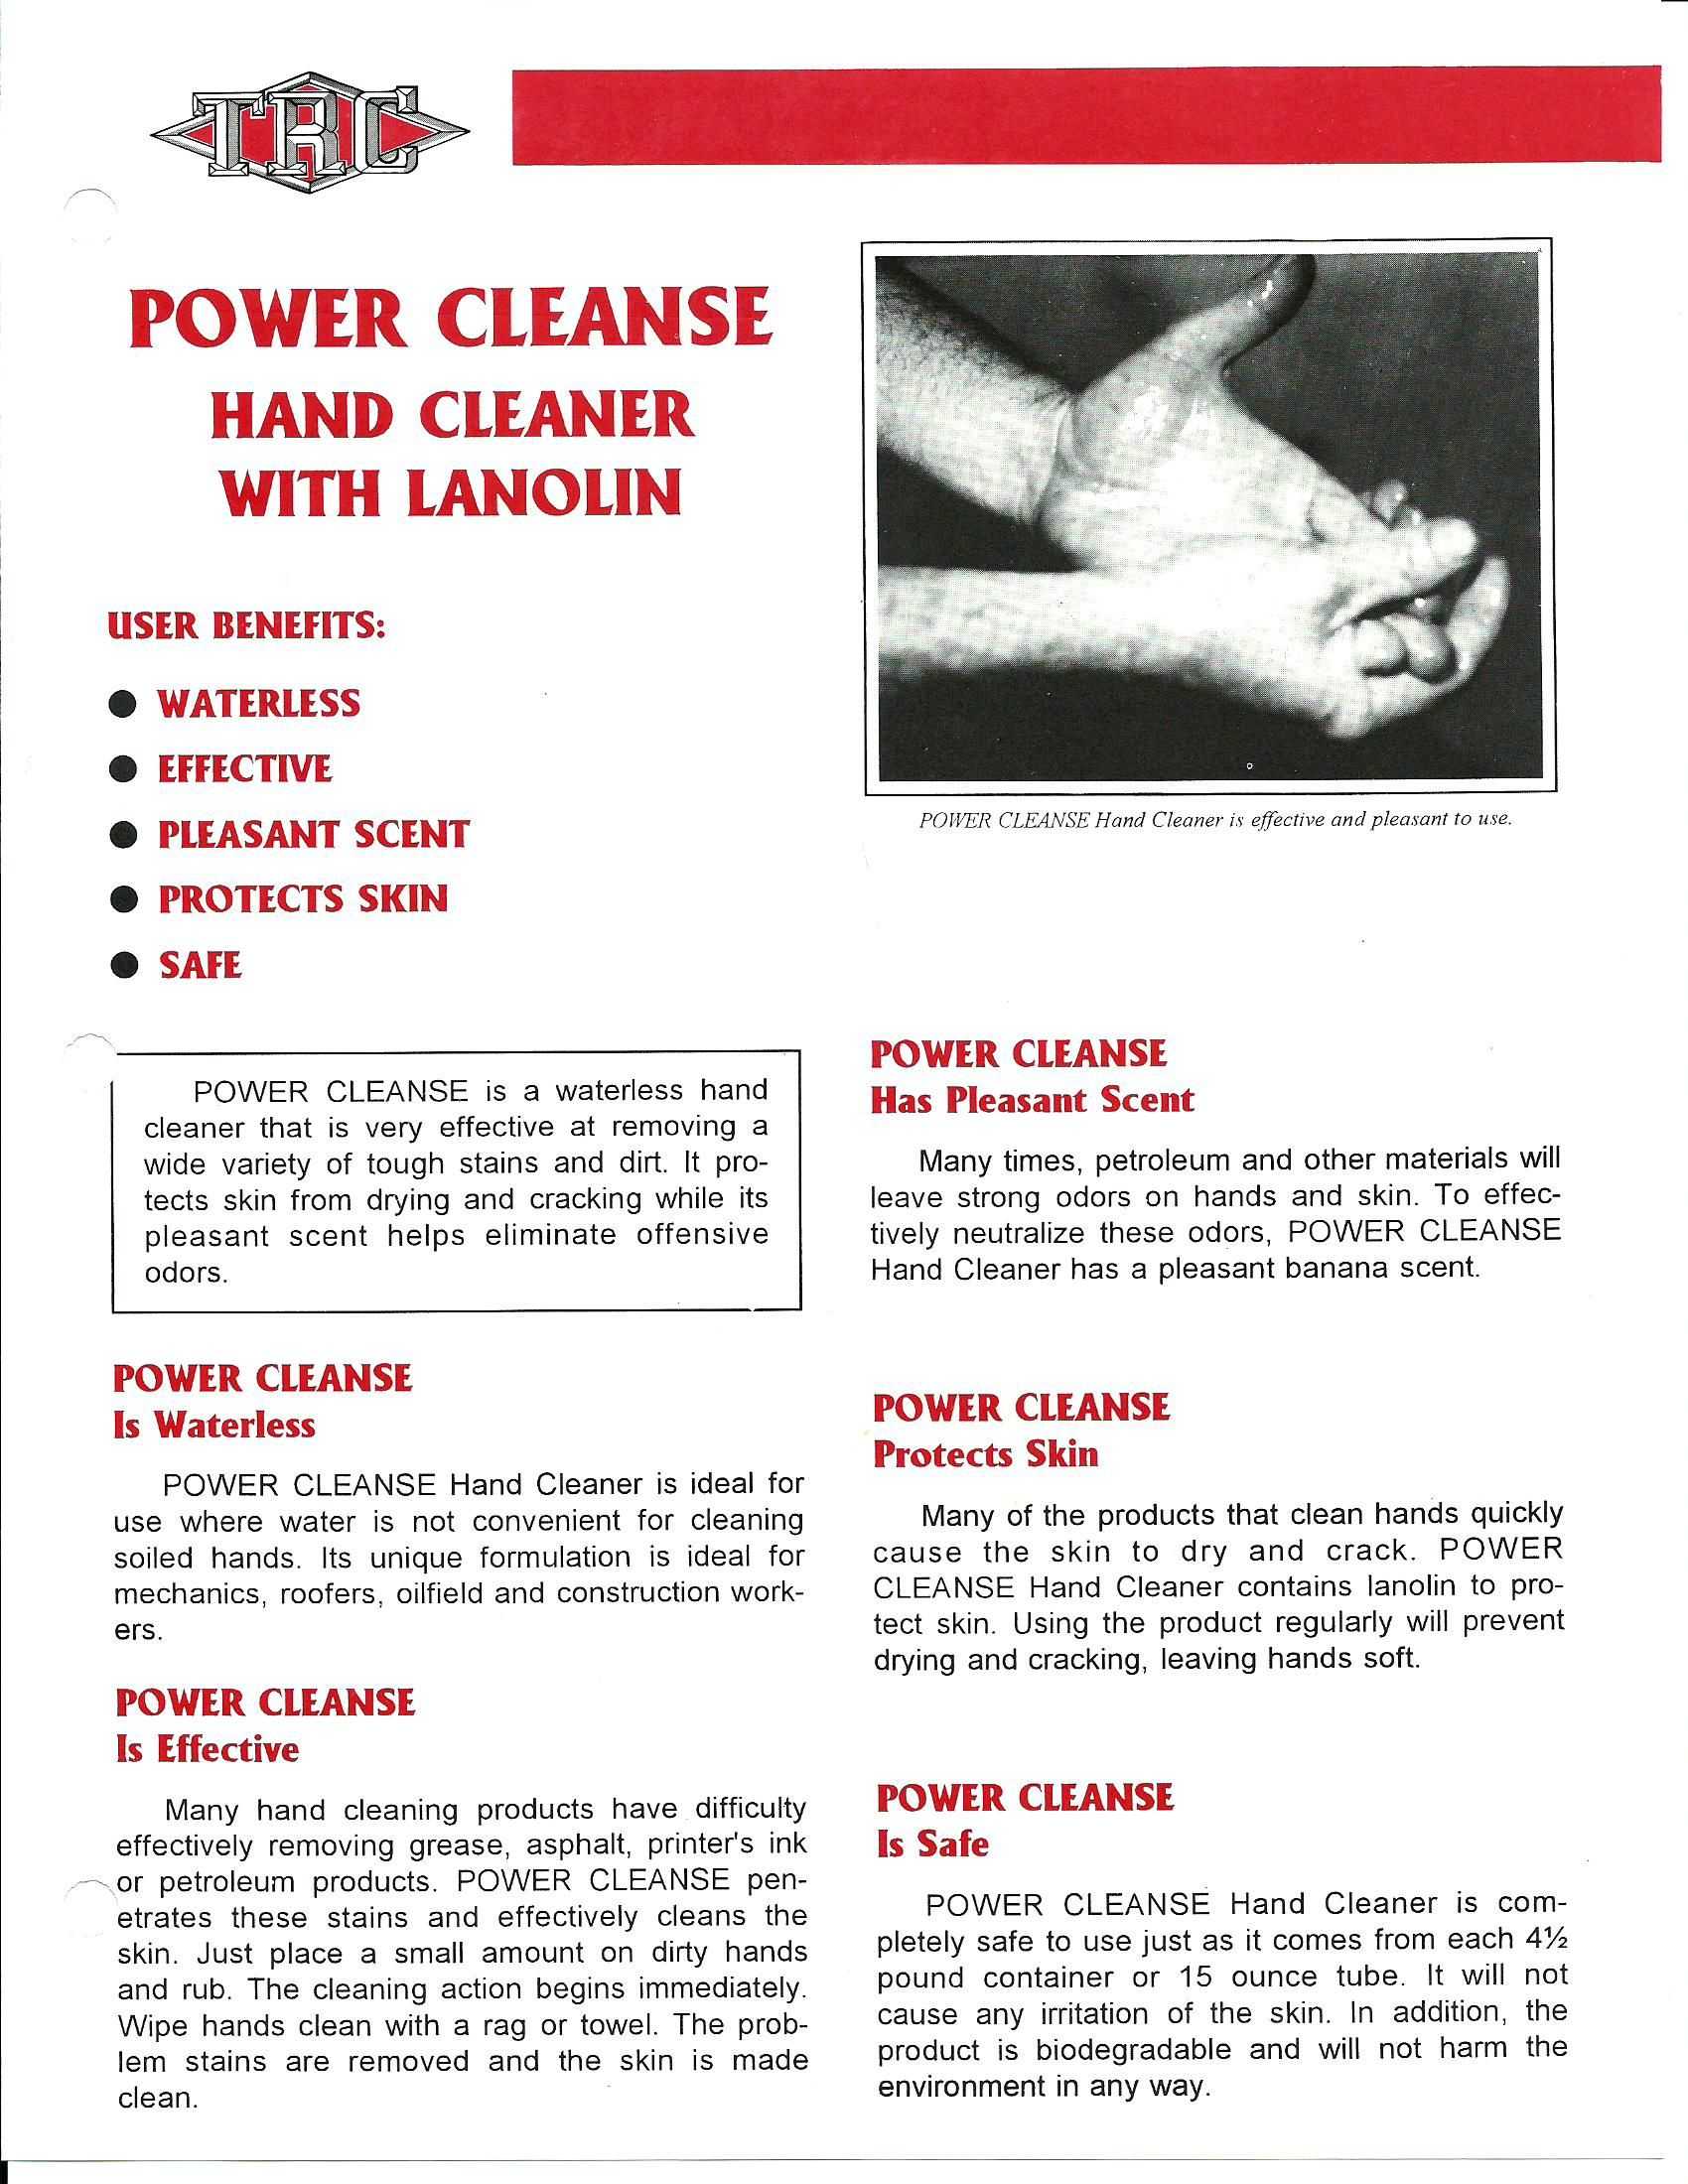 Power Cleanse Hand Cleaner With Lanolin at Texas Refinery Coatings